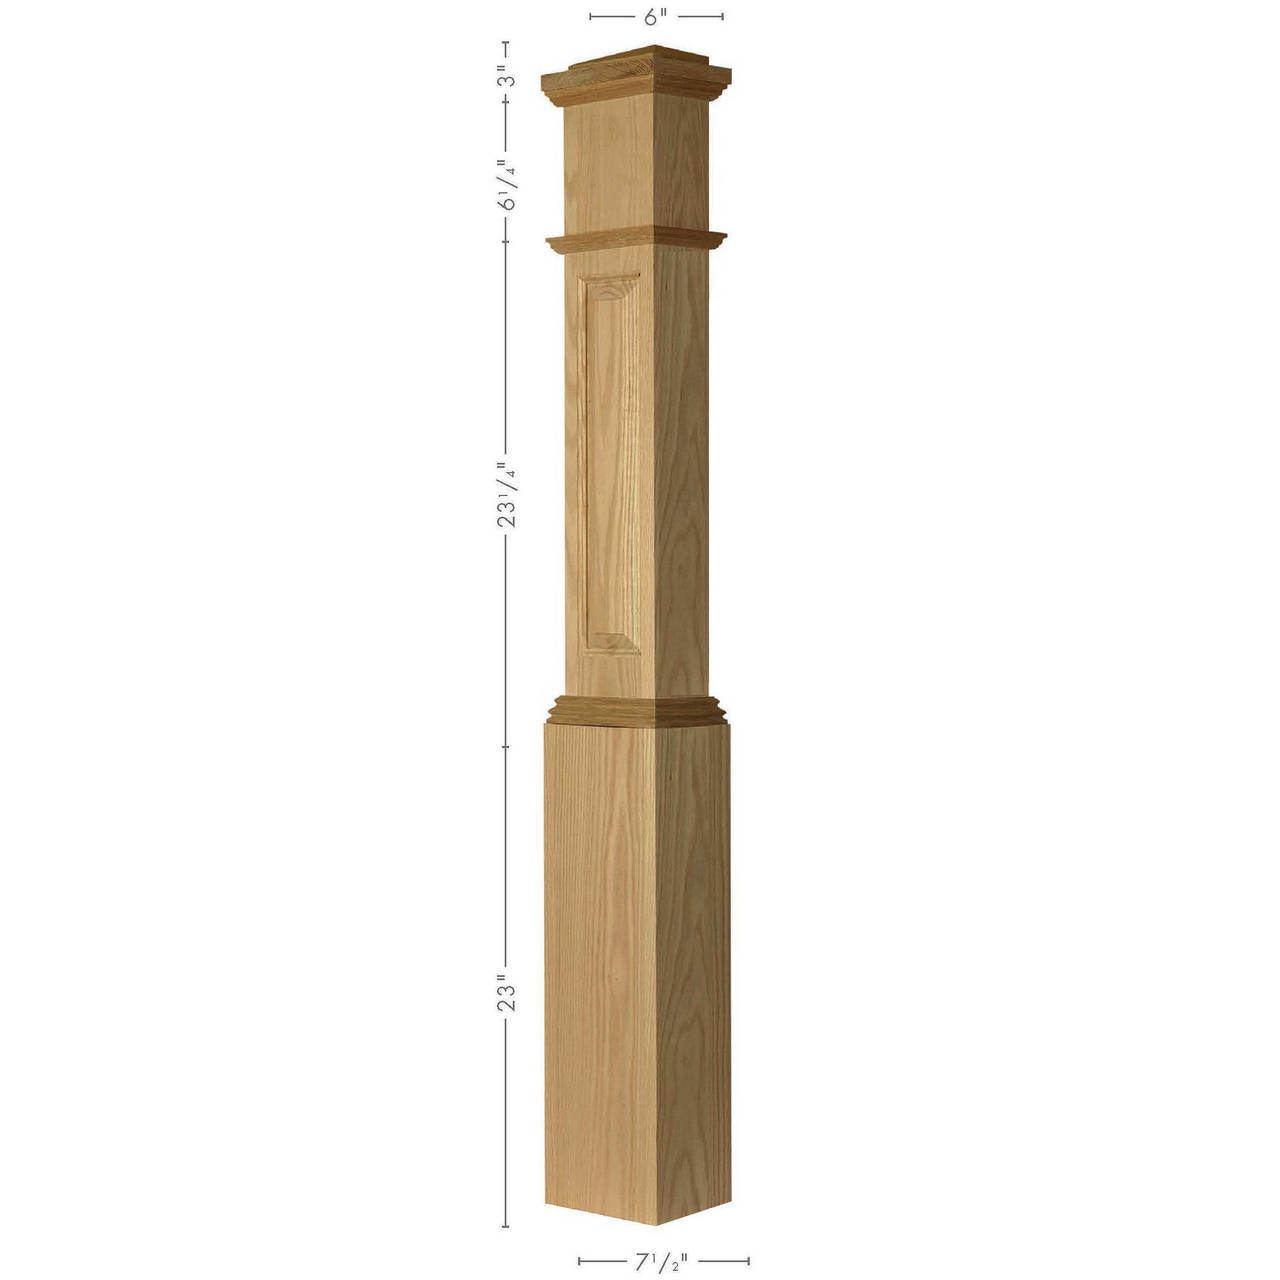 RP-4092 Primed Raised Panel Large HALF Box Newel Post